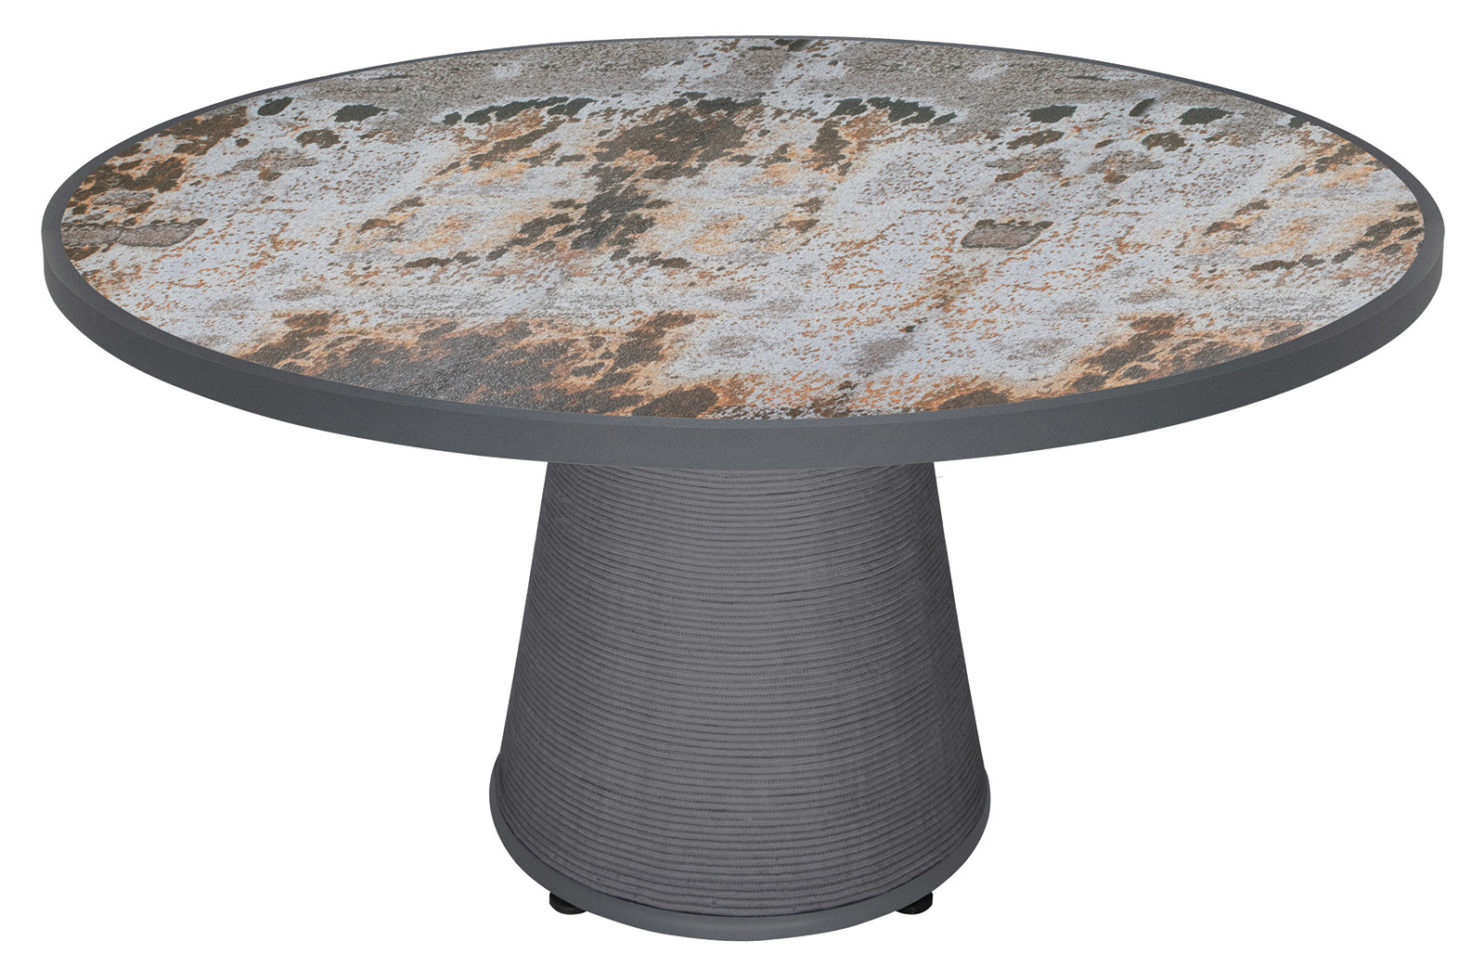 Archipelago alexander table 620FT100P2BBT DWT 1 3Q